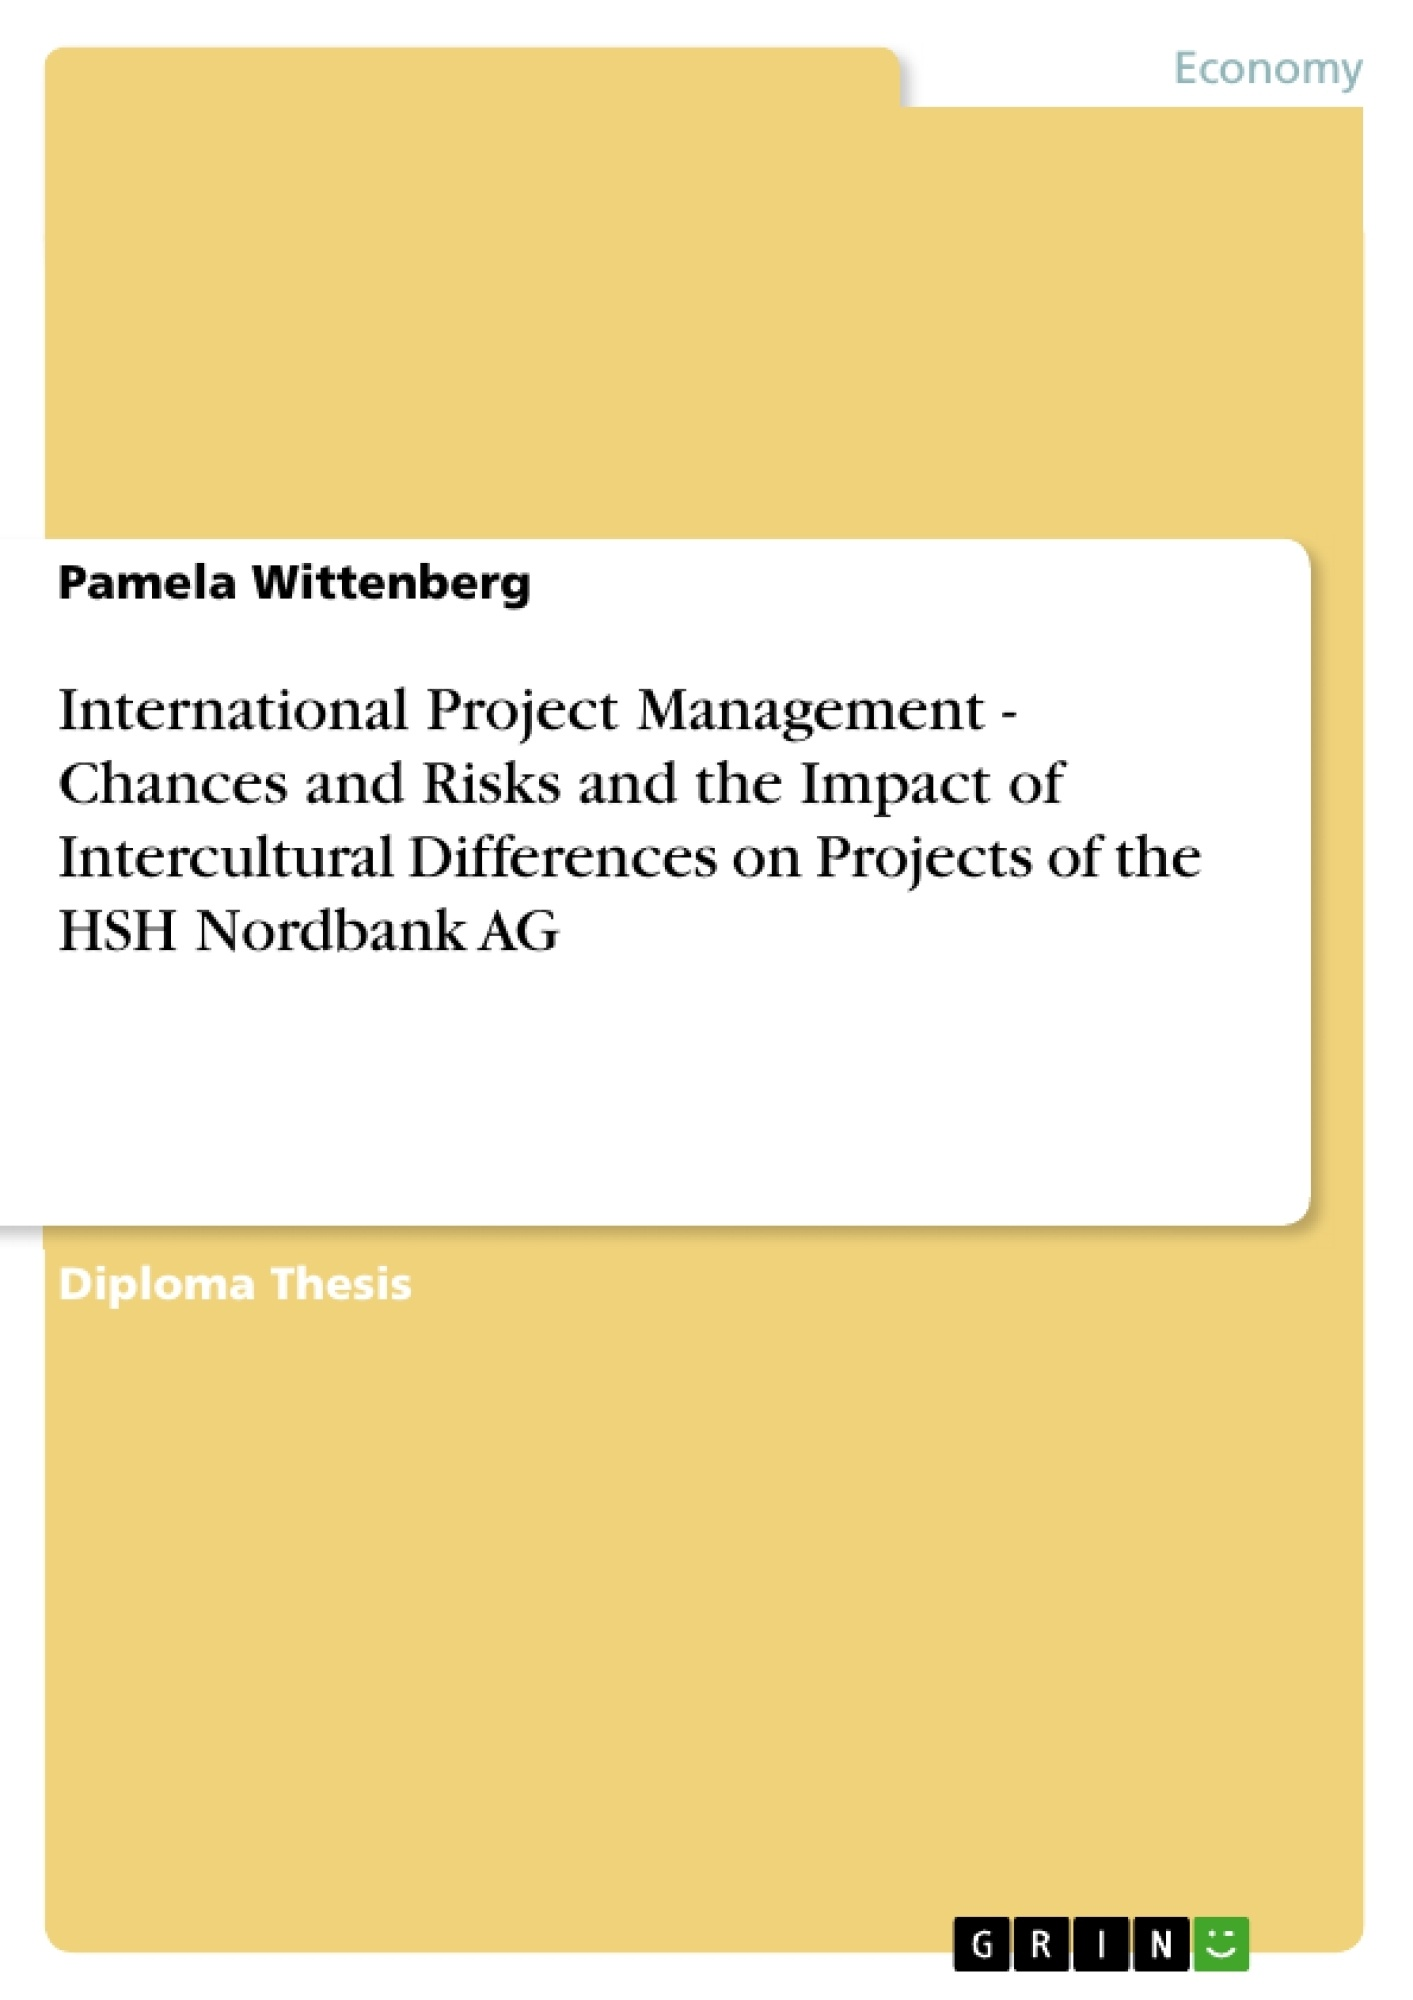 Title: International Project Management - Chances and Risks and the Impact of Intercultural Differences on Projects of the HSH Nordbank AG